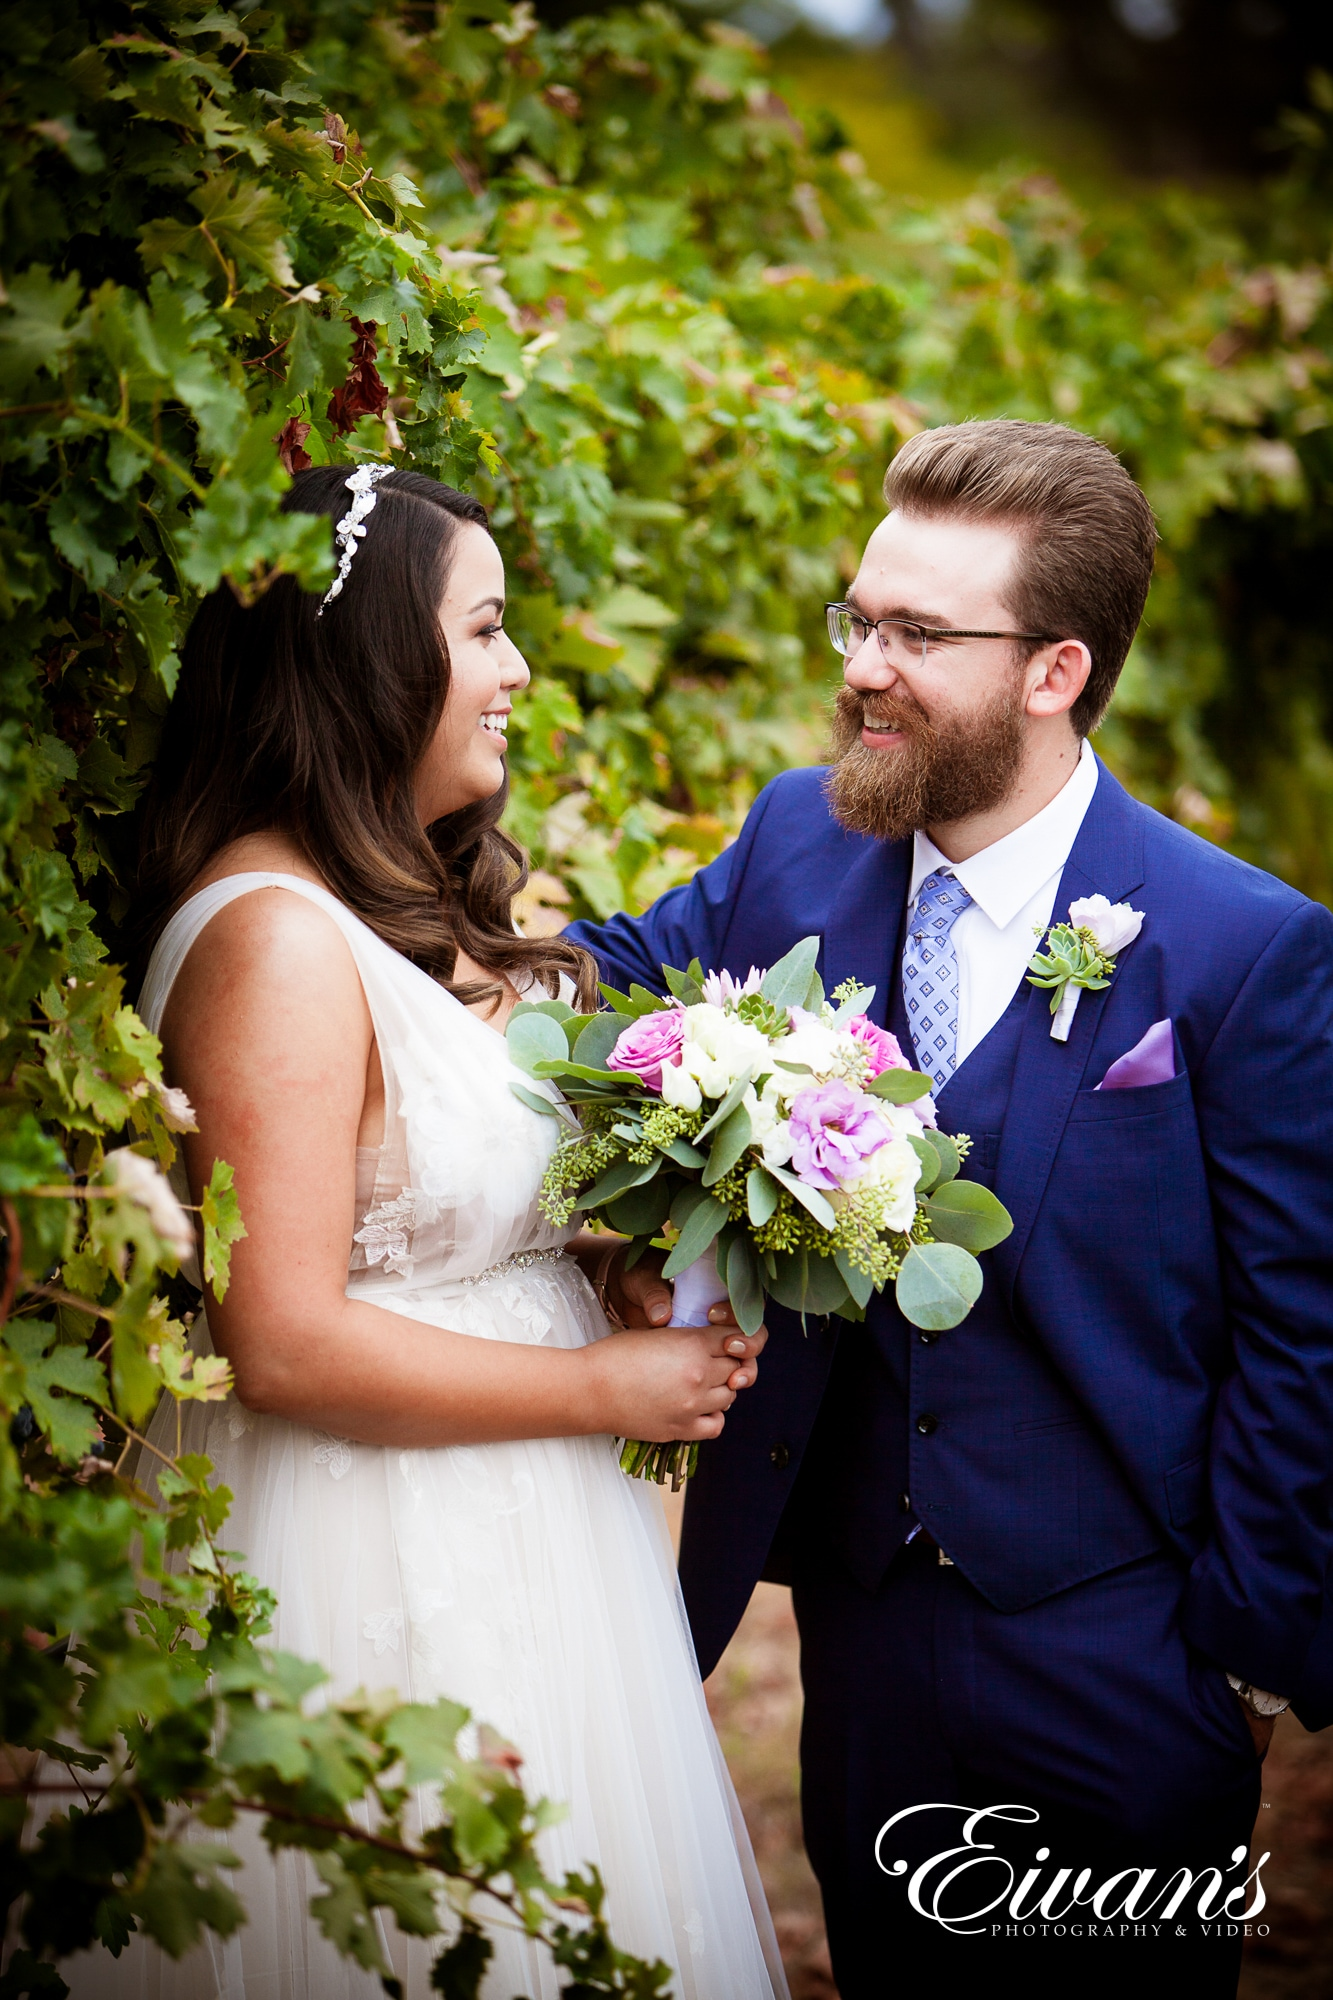 image of a bride and groom standing in front of a wall of greenery